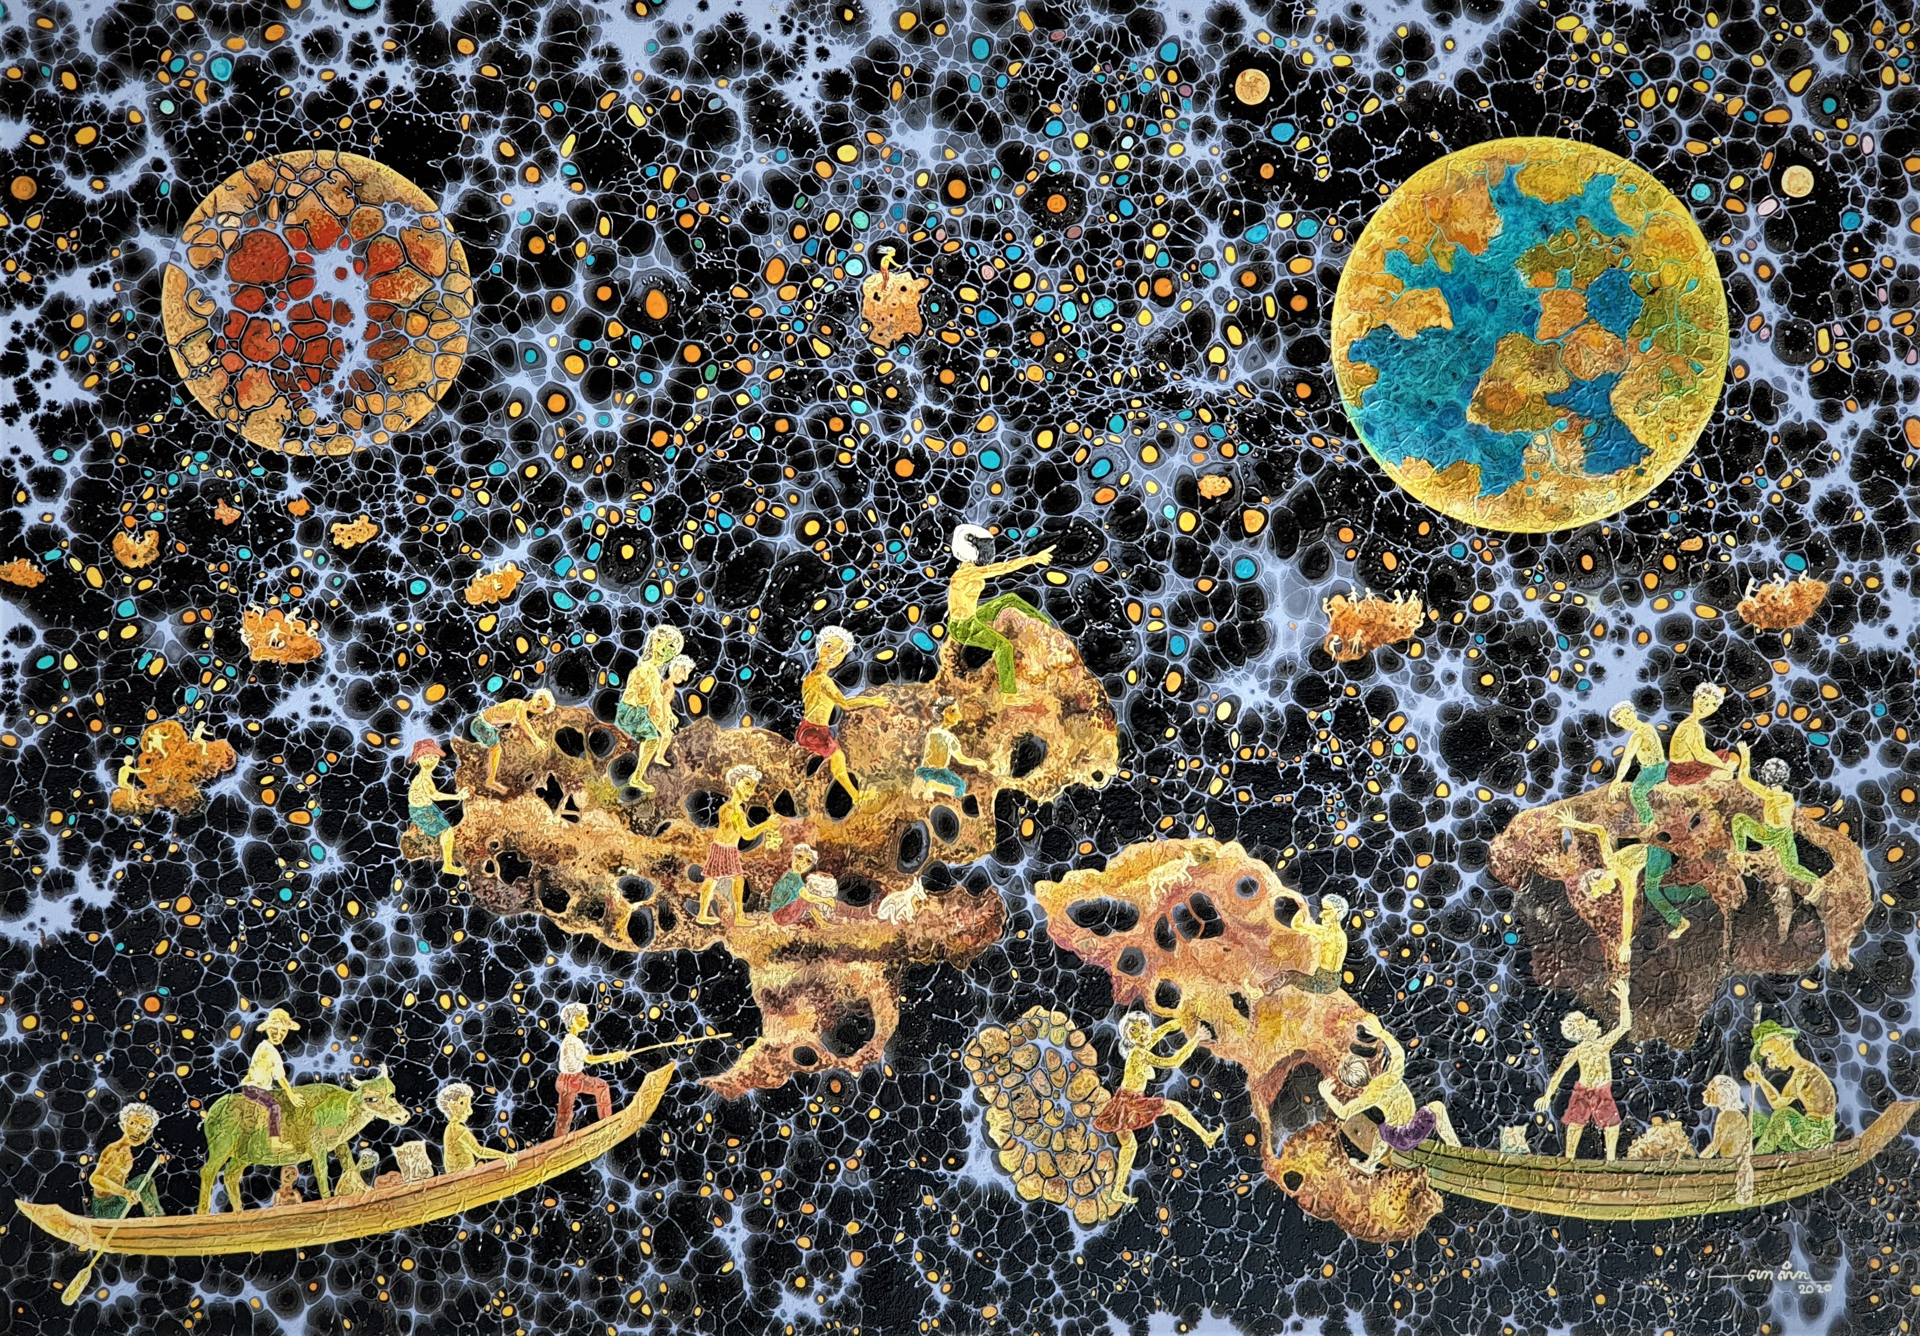 Cosmic Migrations by Seyha Hour